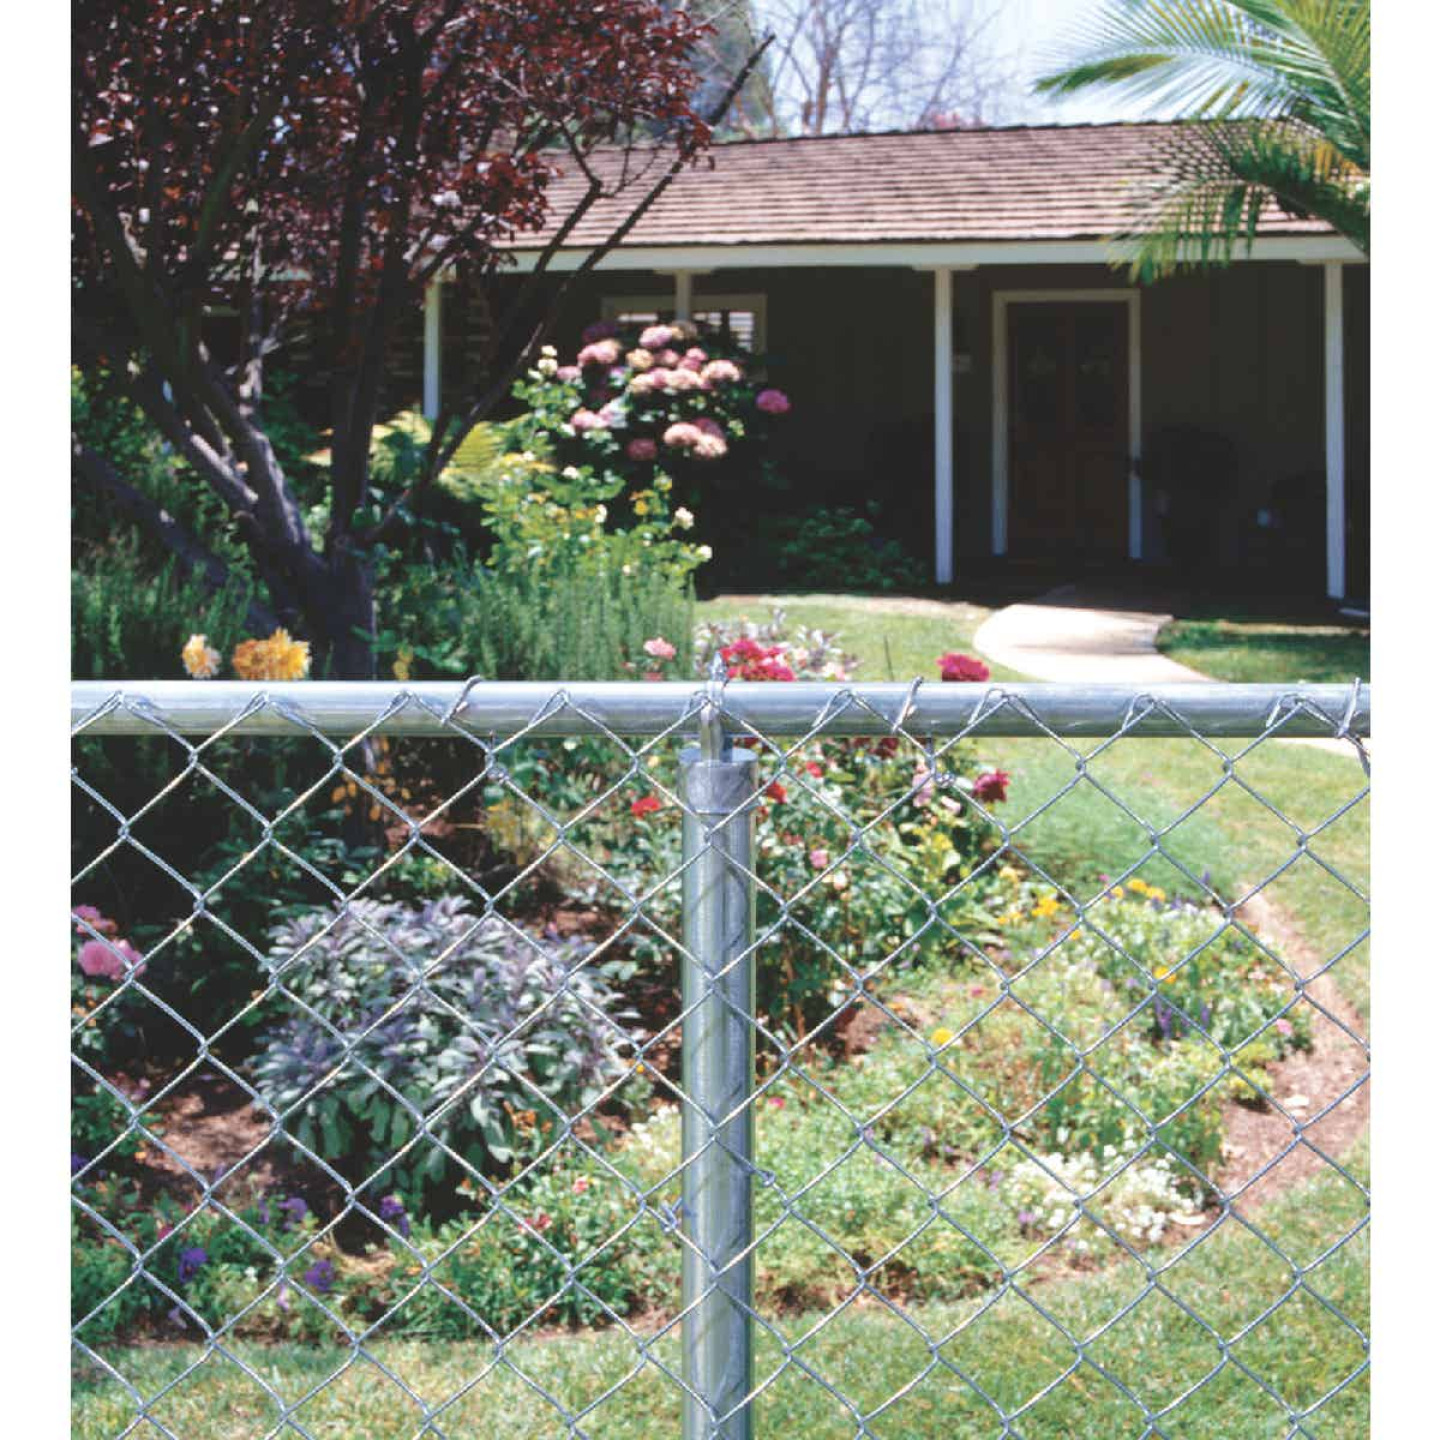 Midwest Air Tech 48 in. x 50 ft. 2-3/8 in. 12.5 ga Chain Link Fencing Image 2